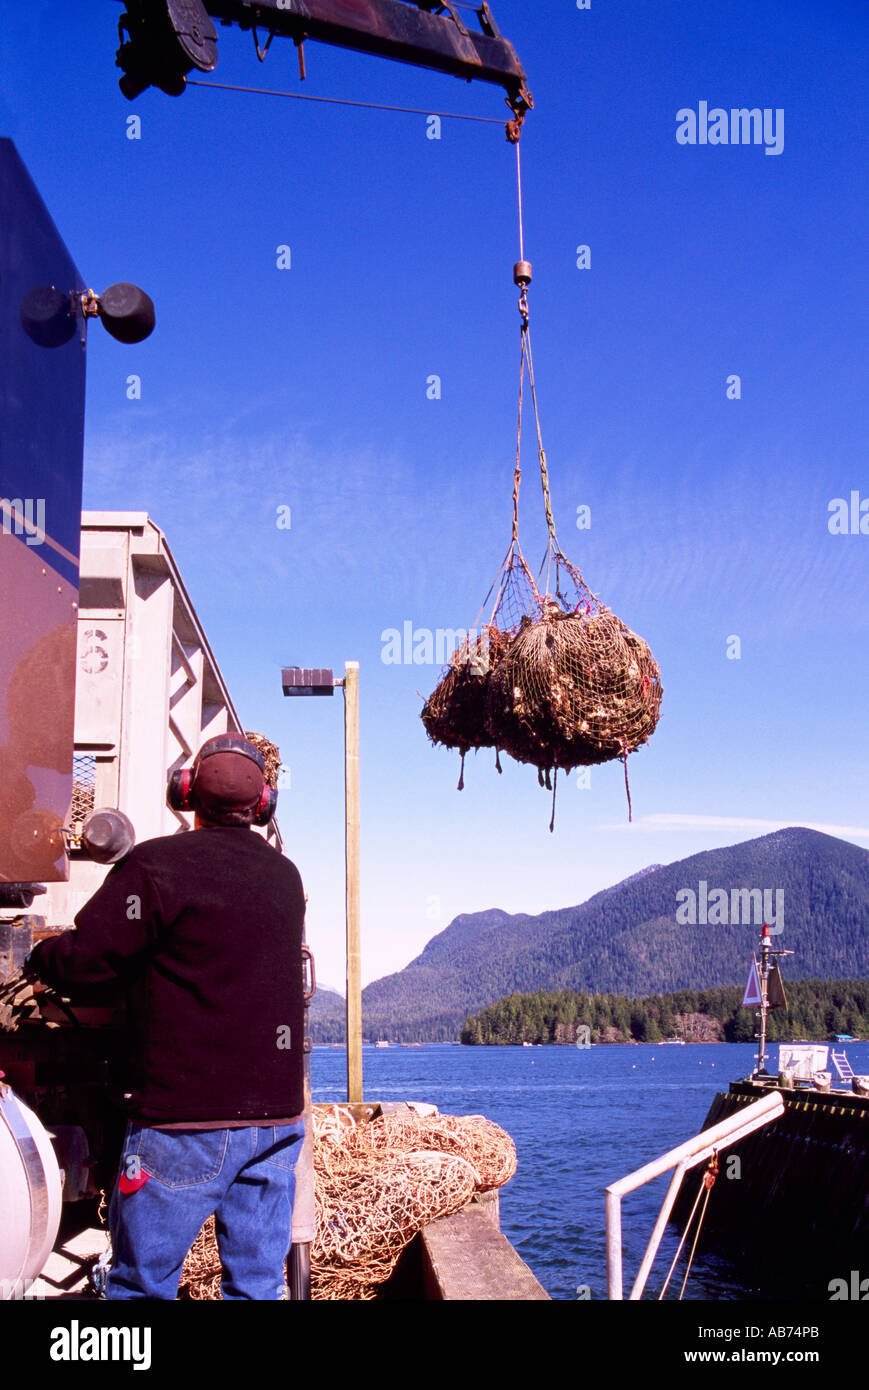 Tofino, BC, Vancouver Island, British Columbia, Canada - Oyster Farmer unloading local Farm Fresh Oysters from Clayoquot Sound - Stock Image